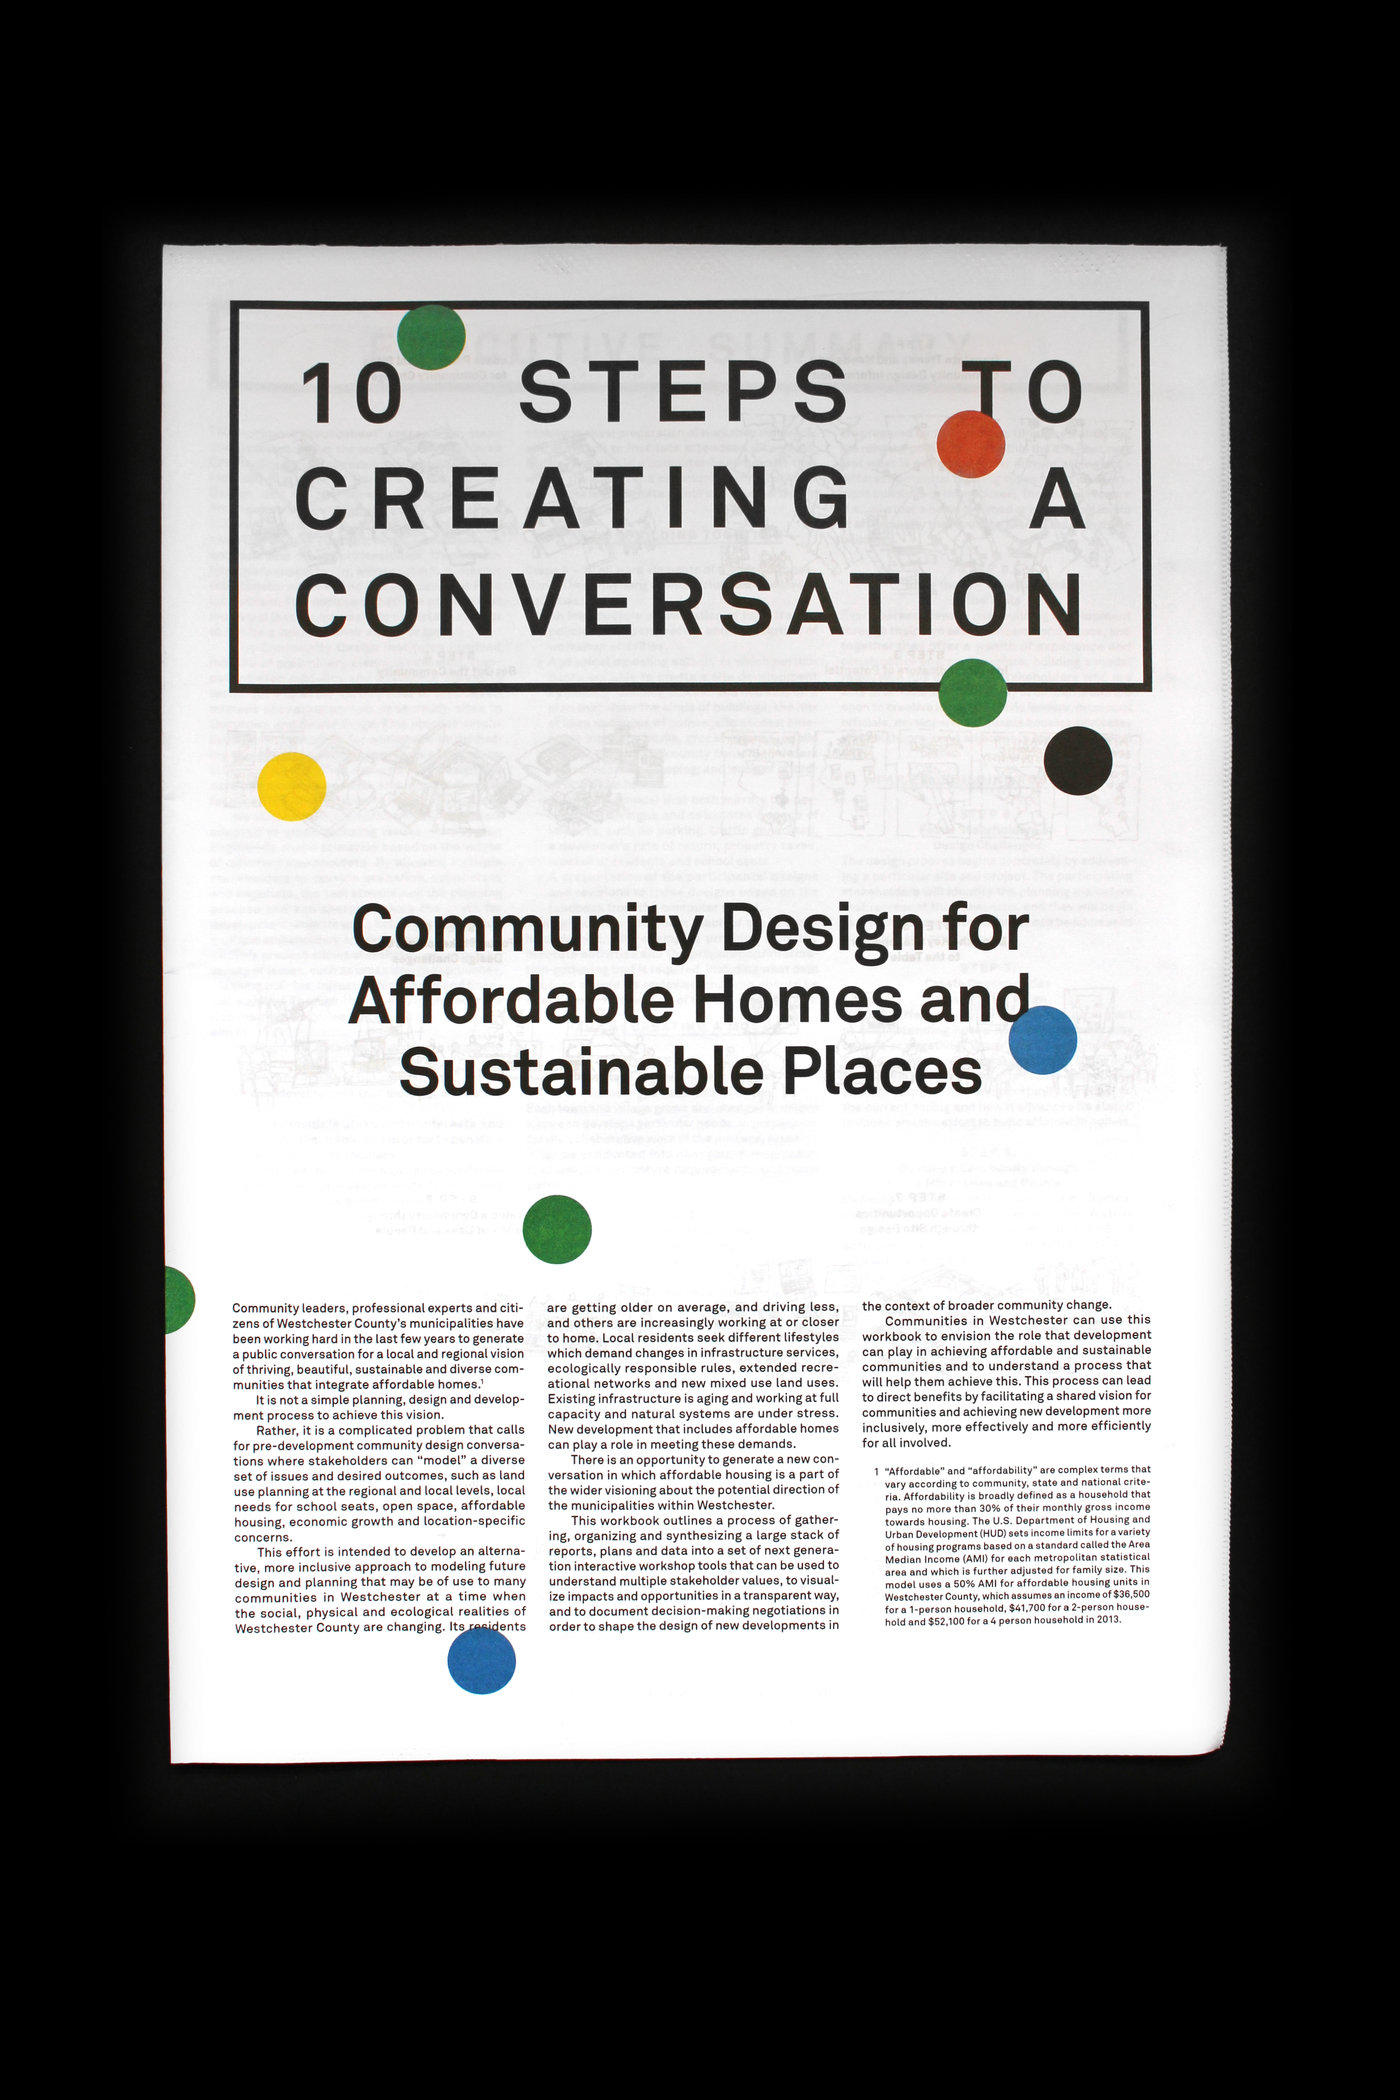 Community Design for Affordable Homes and Sustainable Places